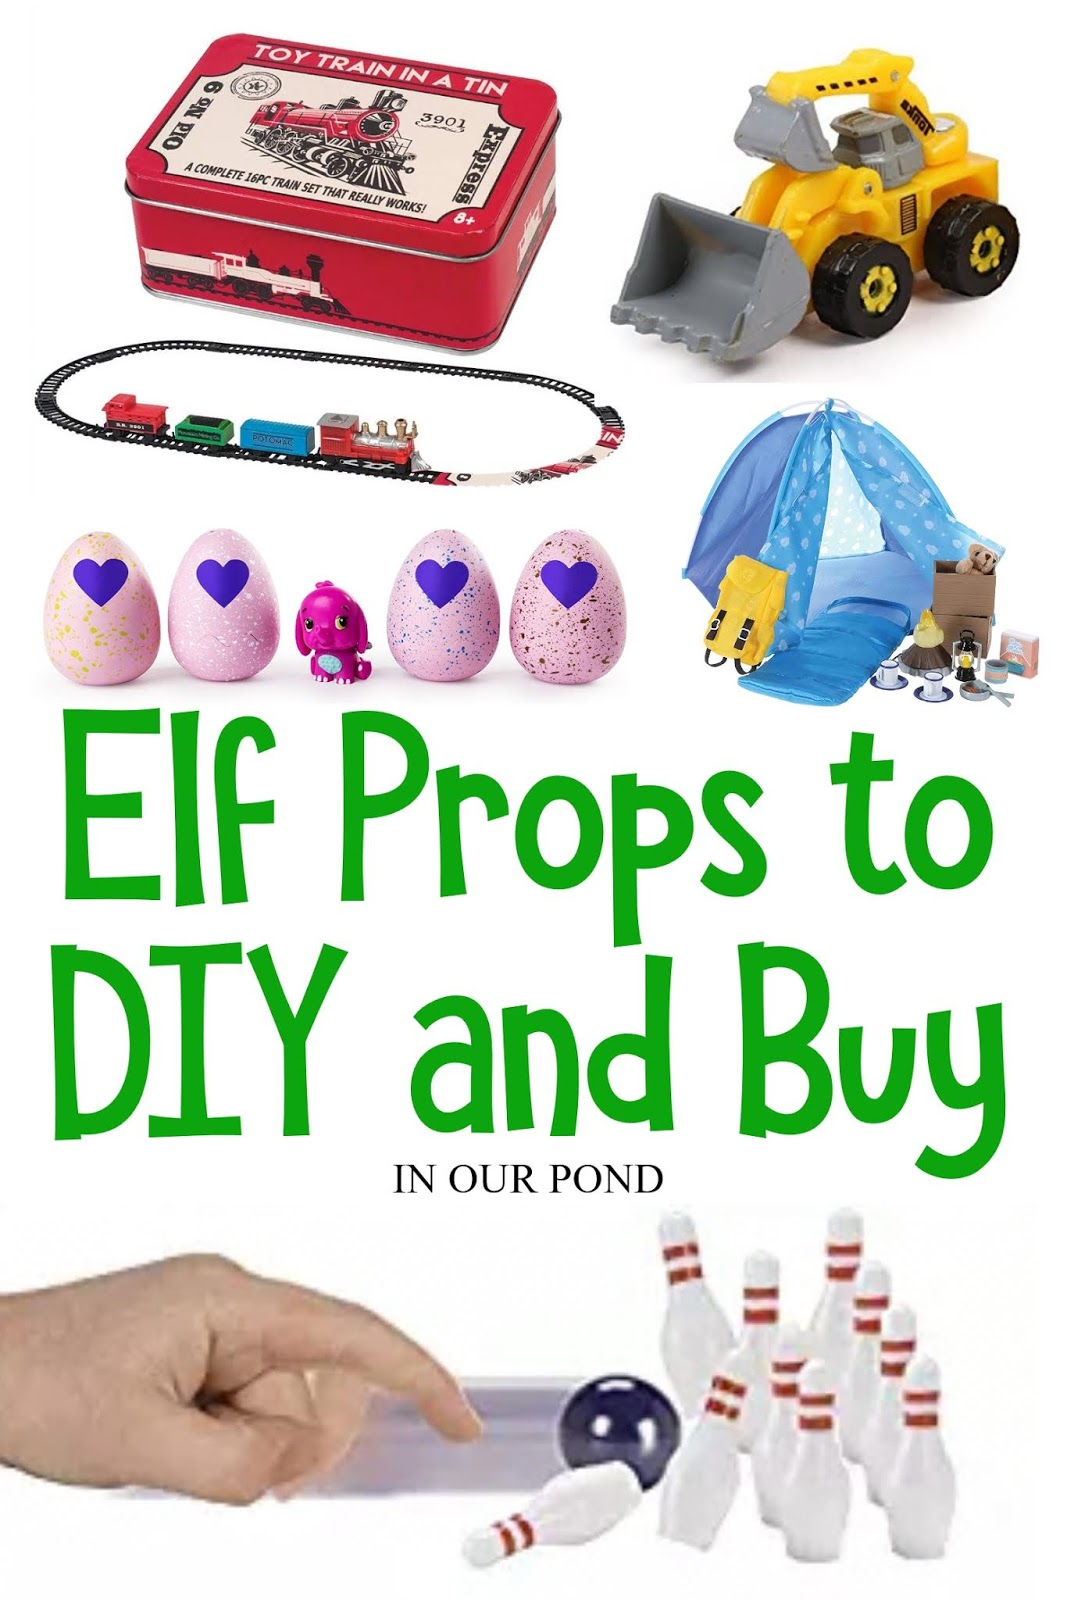 Unofficial Elf Props To Diy And Buy In Our Pond